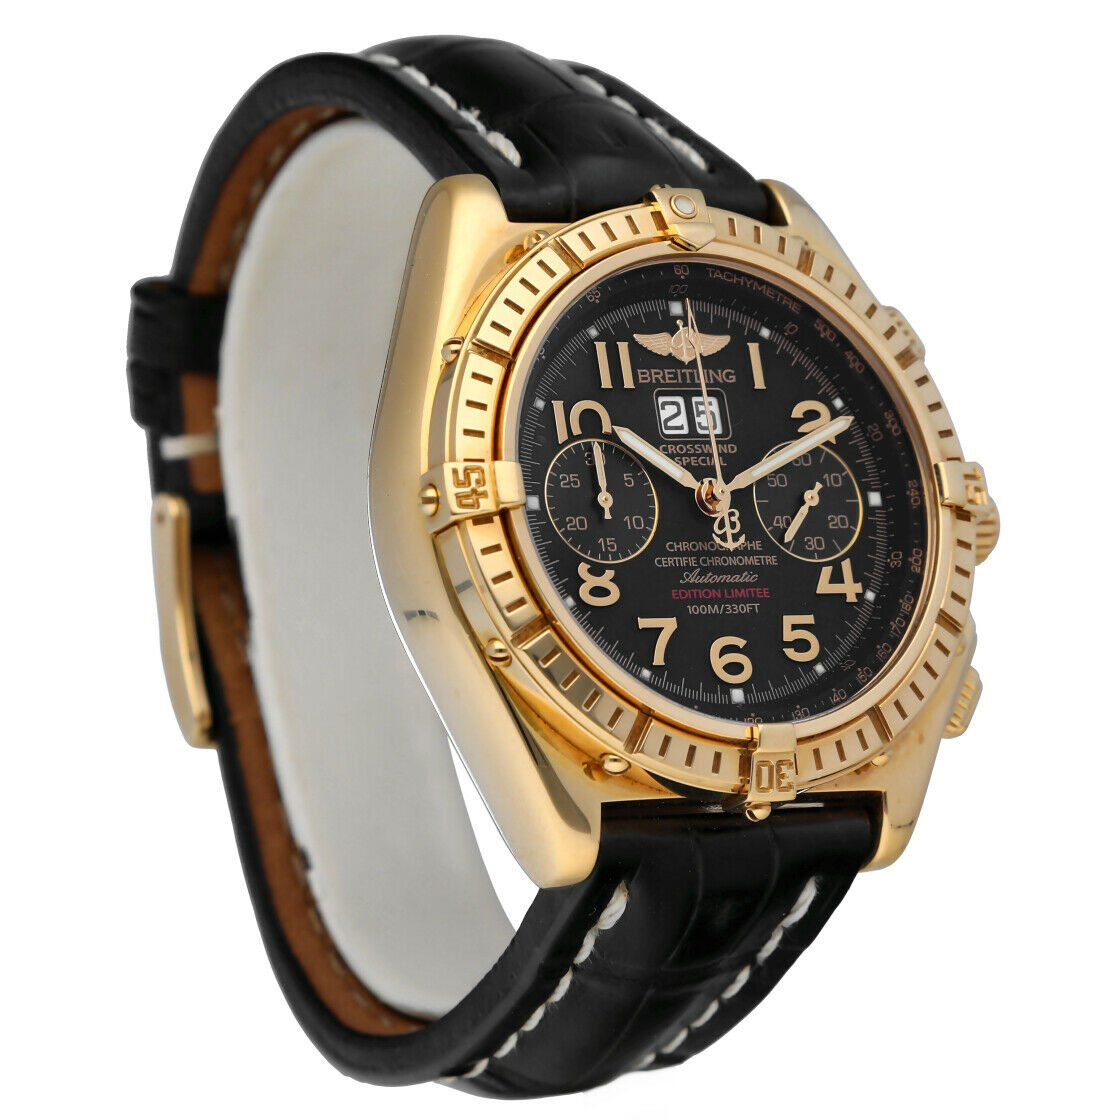 Breitling K44356 Crosswind 18k Yellow Gold Limited Edition Automatic Mens Watch 133527984163 5